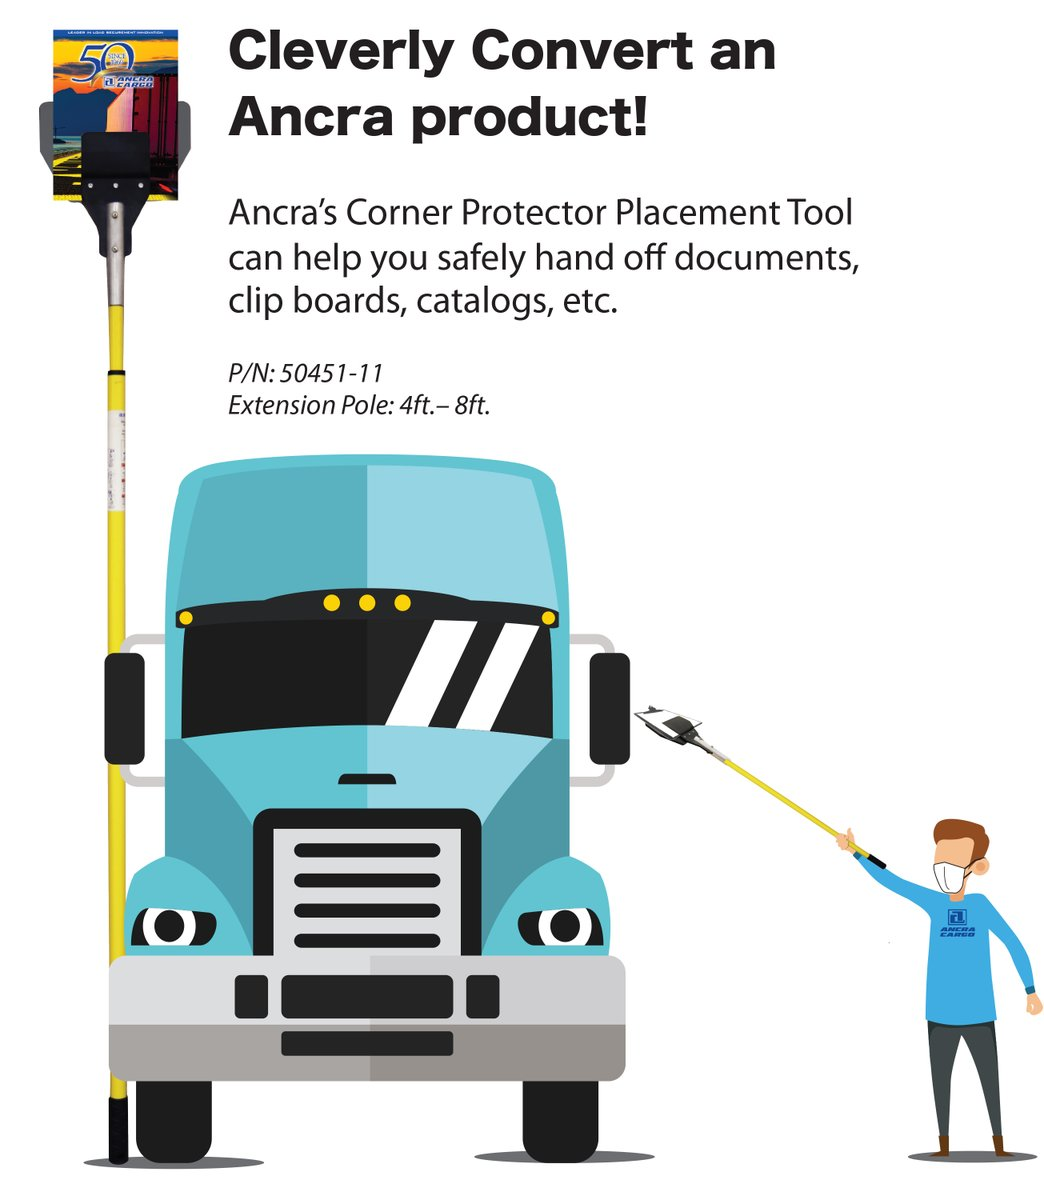 We've been thinking up some clever ways to use our corner protector placement tool. Easily hand off documents at a safe distance to drivers or customers. https://t.co/NRKyBooPcK